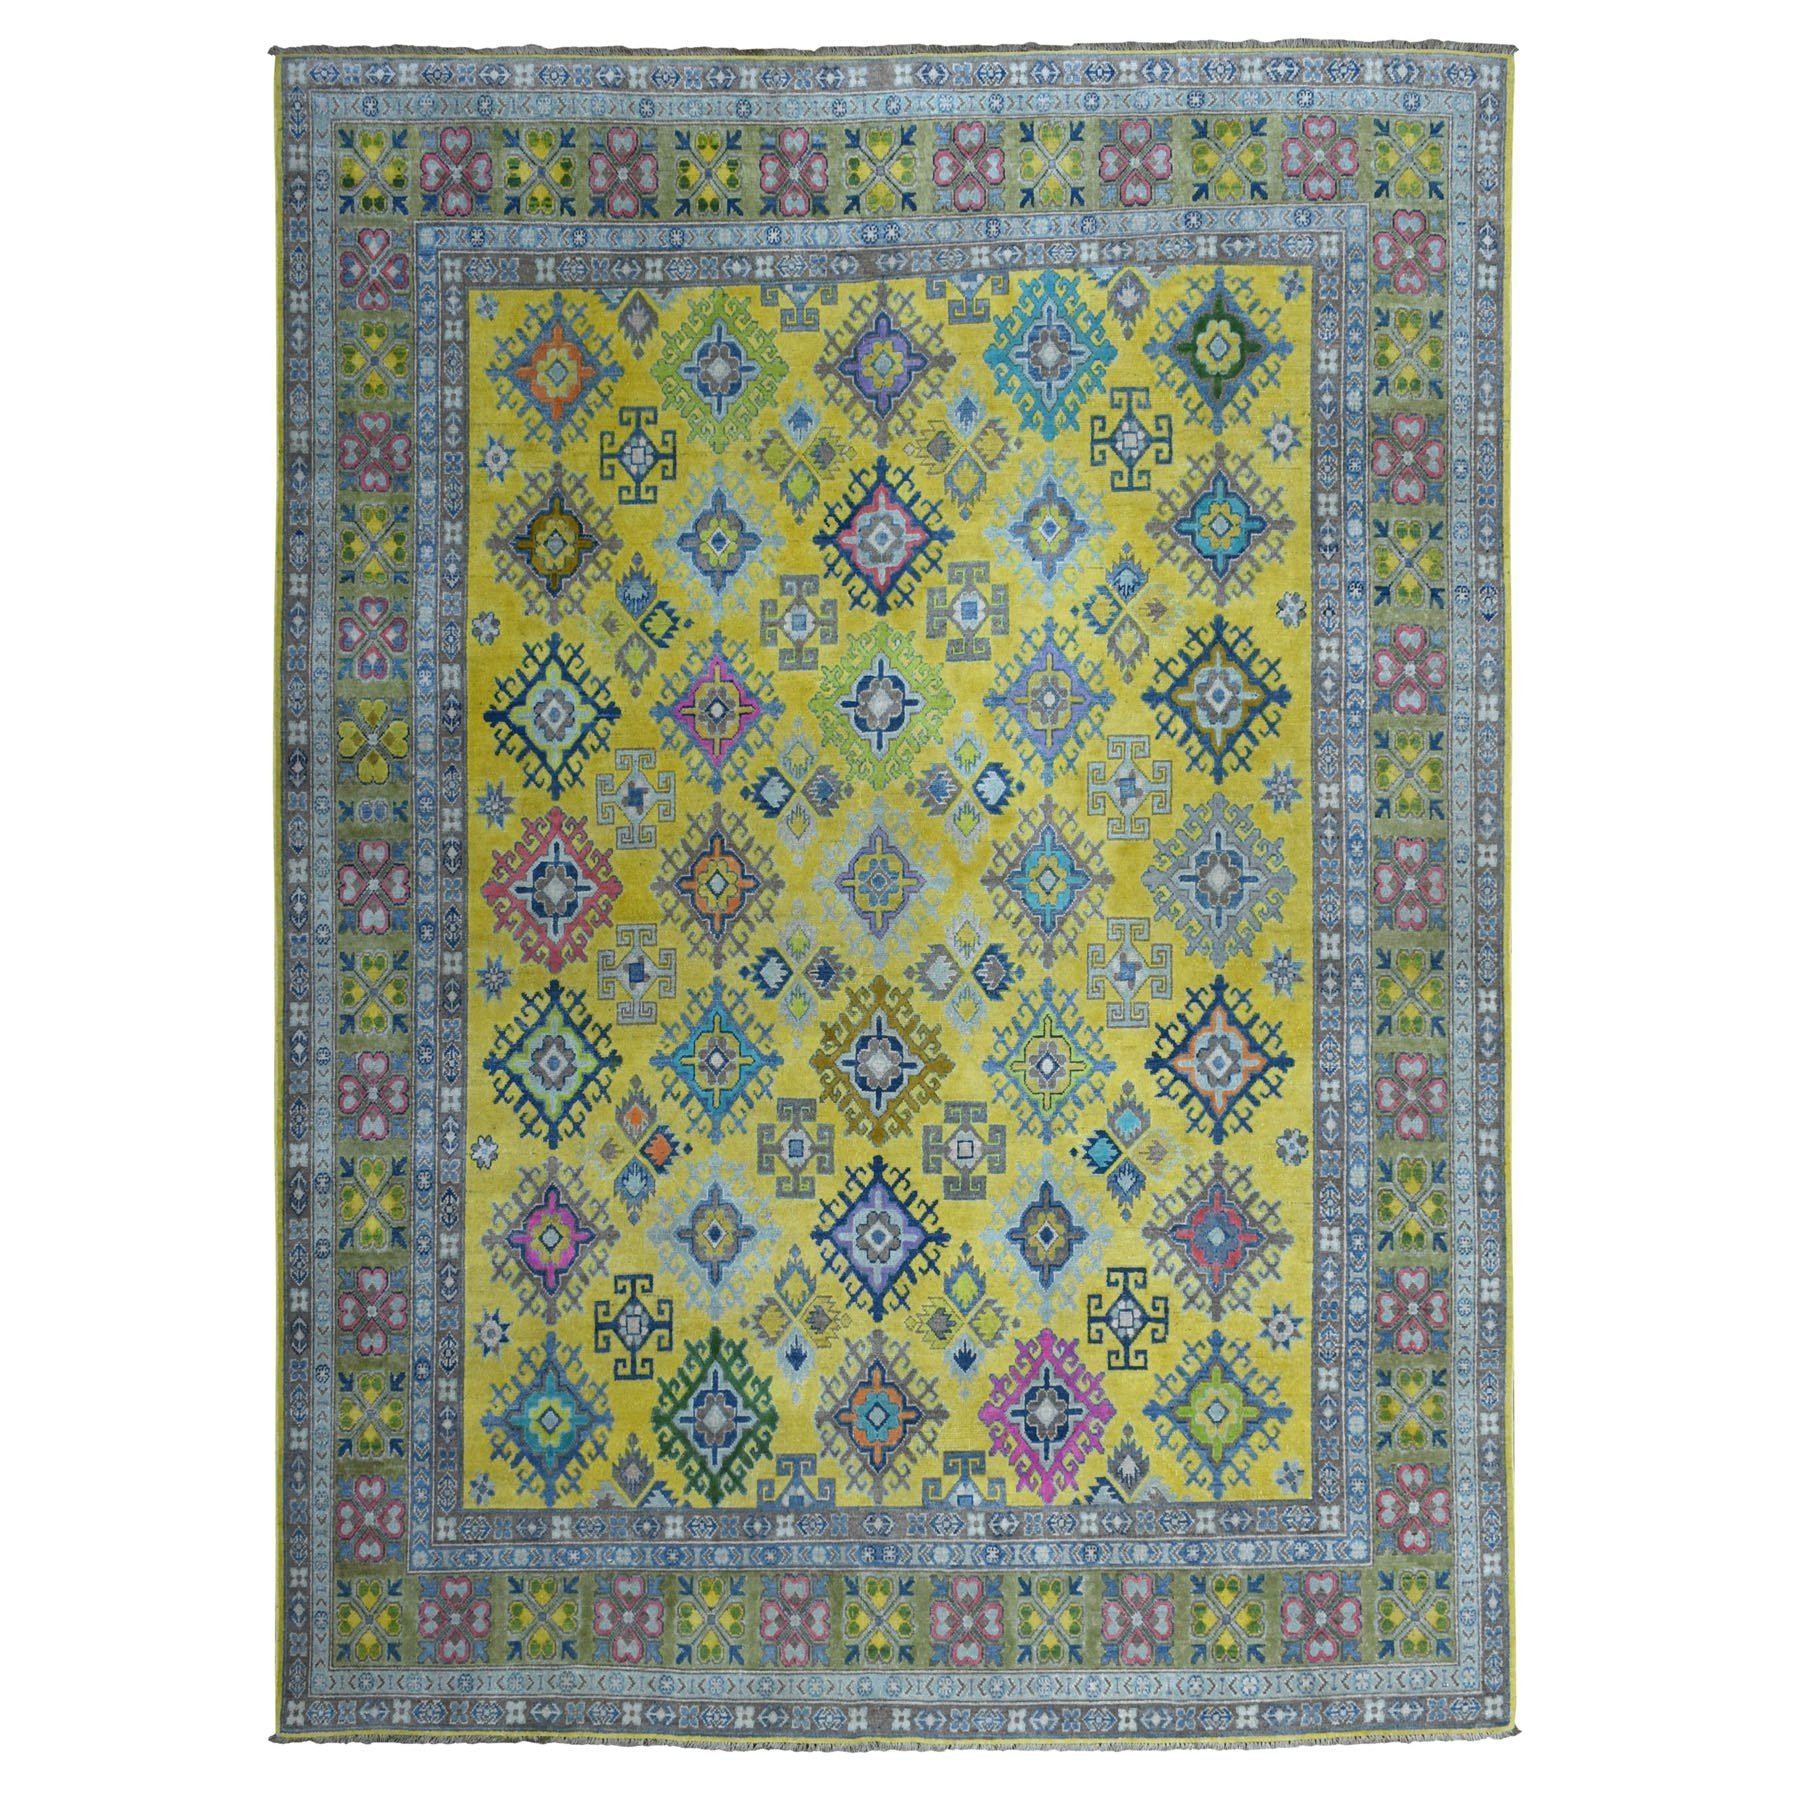 8'x10' Colorful Yellow Fusion Kazak Pure Wool Geometric Design Hand Woven Oriental Rug